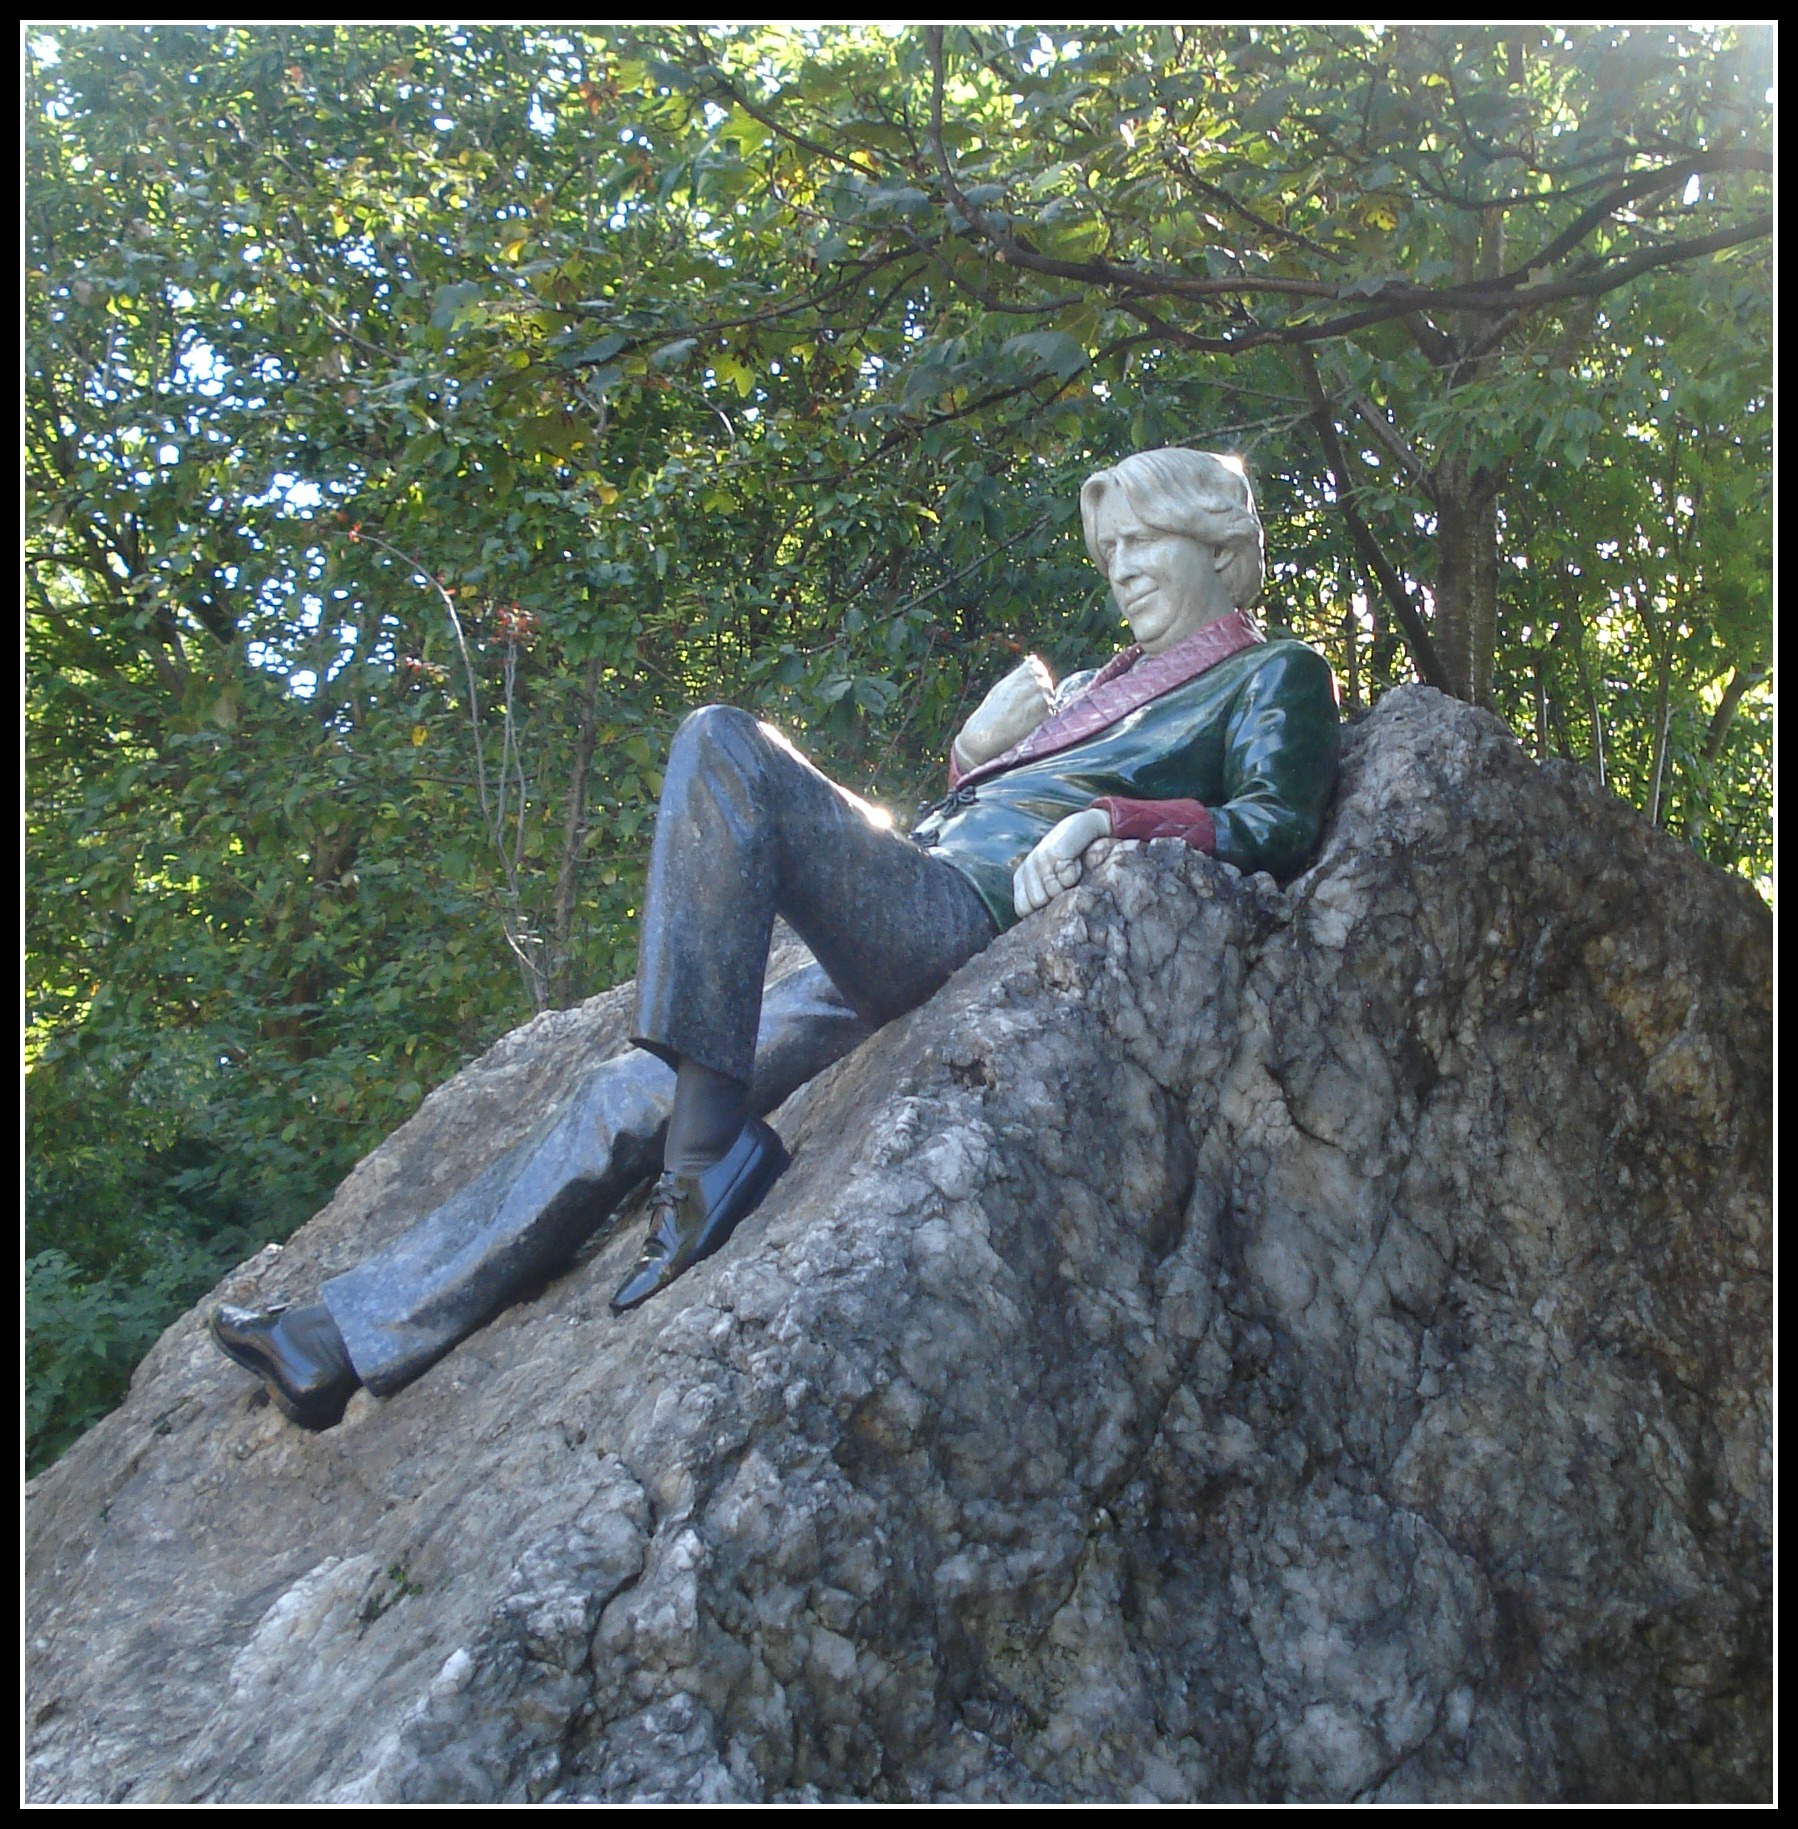 The famous Oscar Wilde Statue in Merrion Square, Dublin.